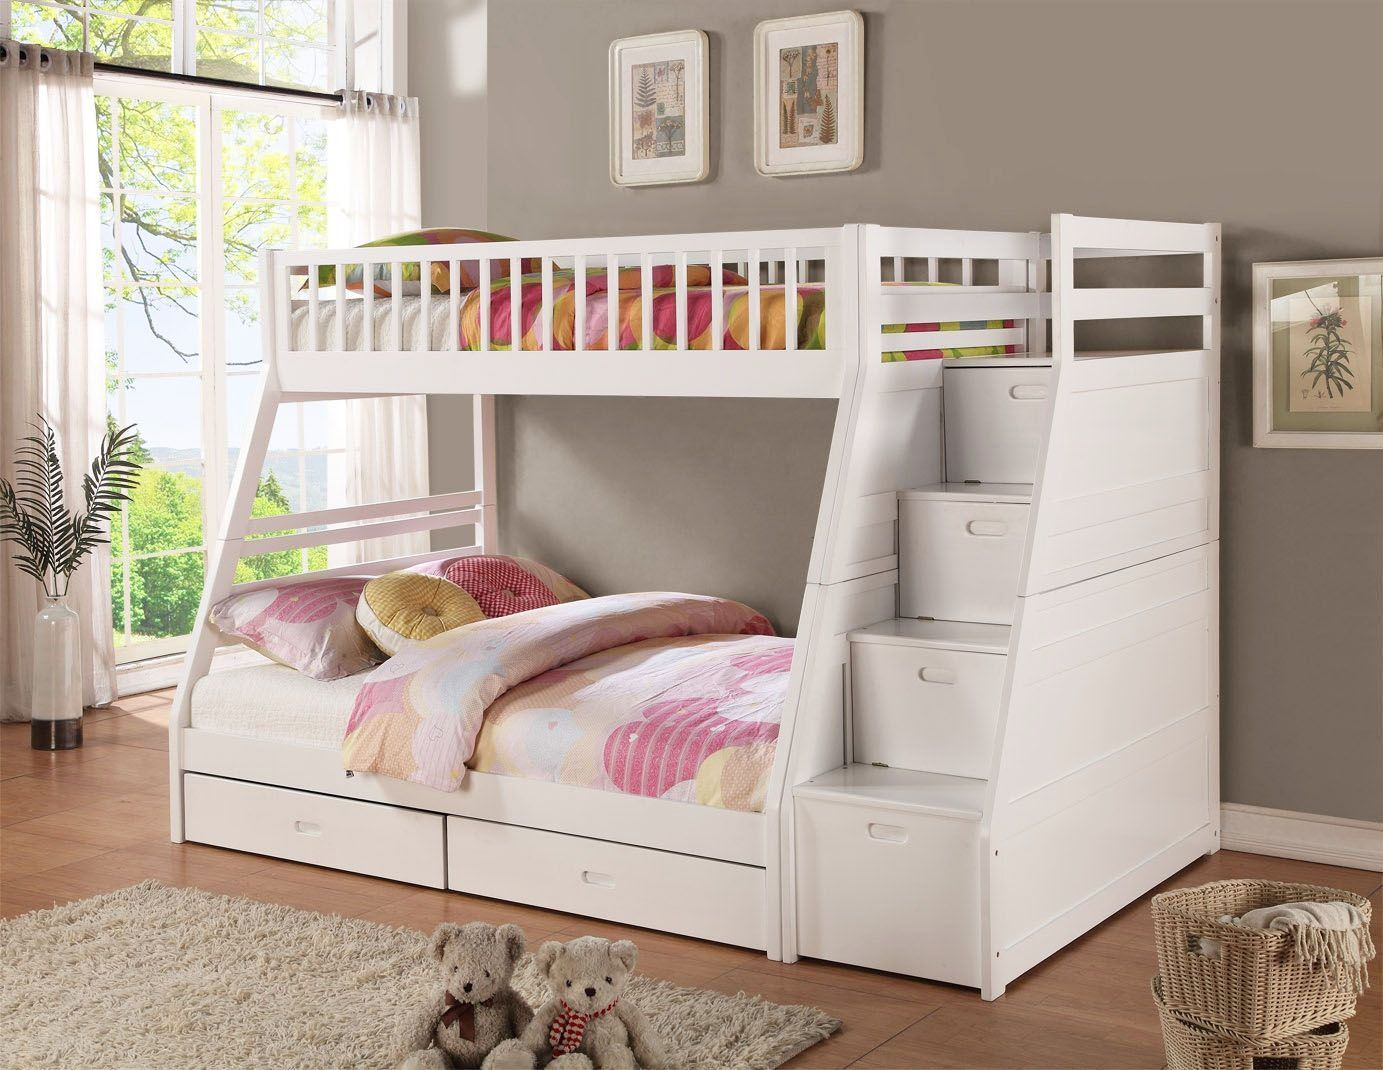 Double loft bed with stairs  How to Choose Practical and Safe Bunk Beds for Kids bunkbedsforkids